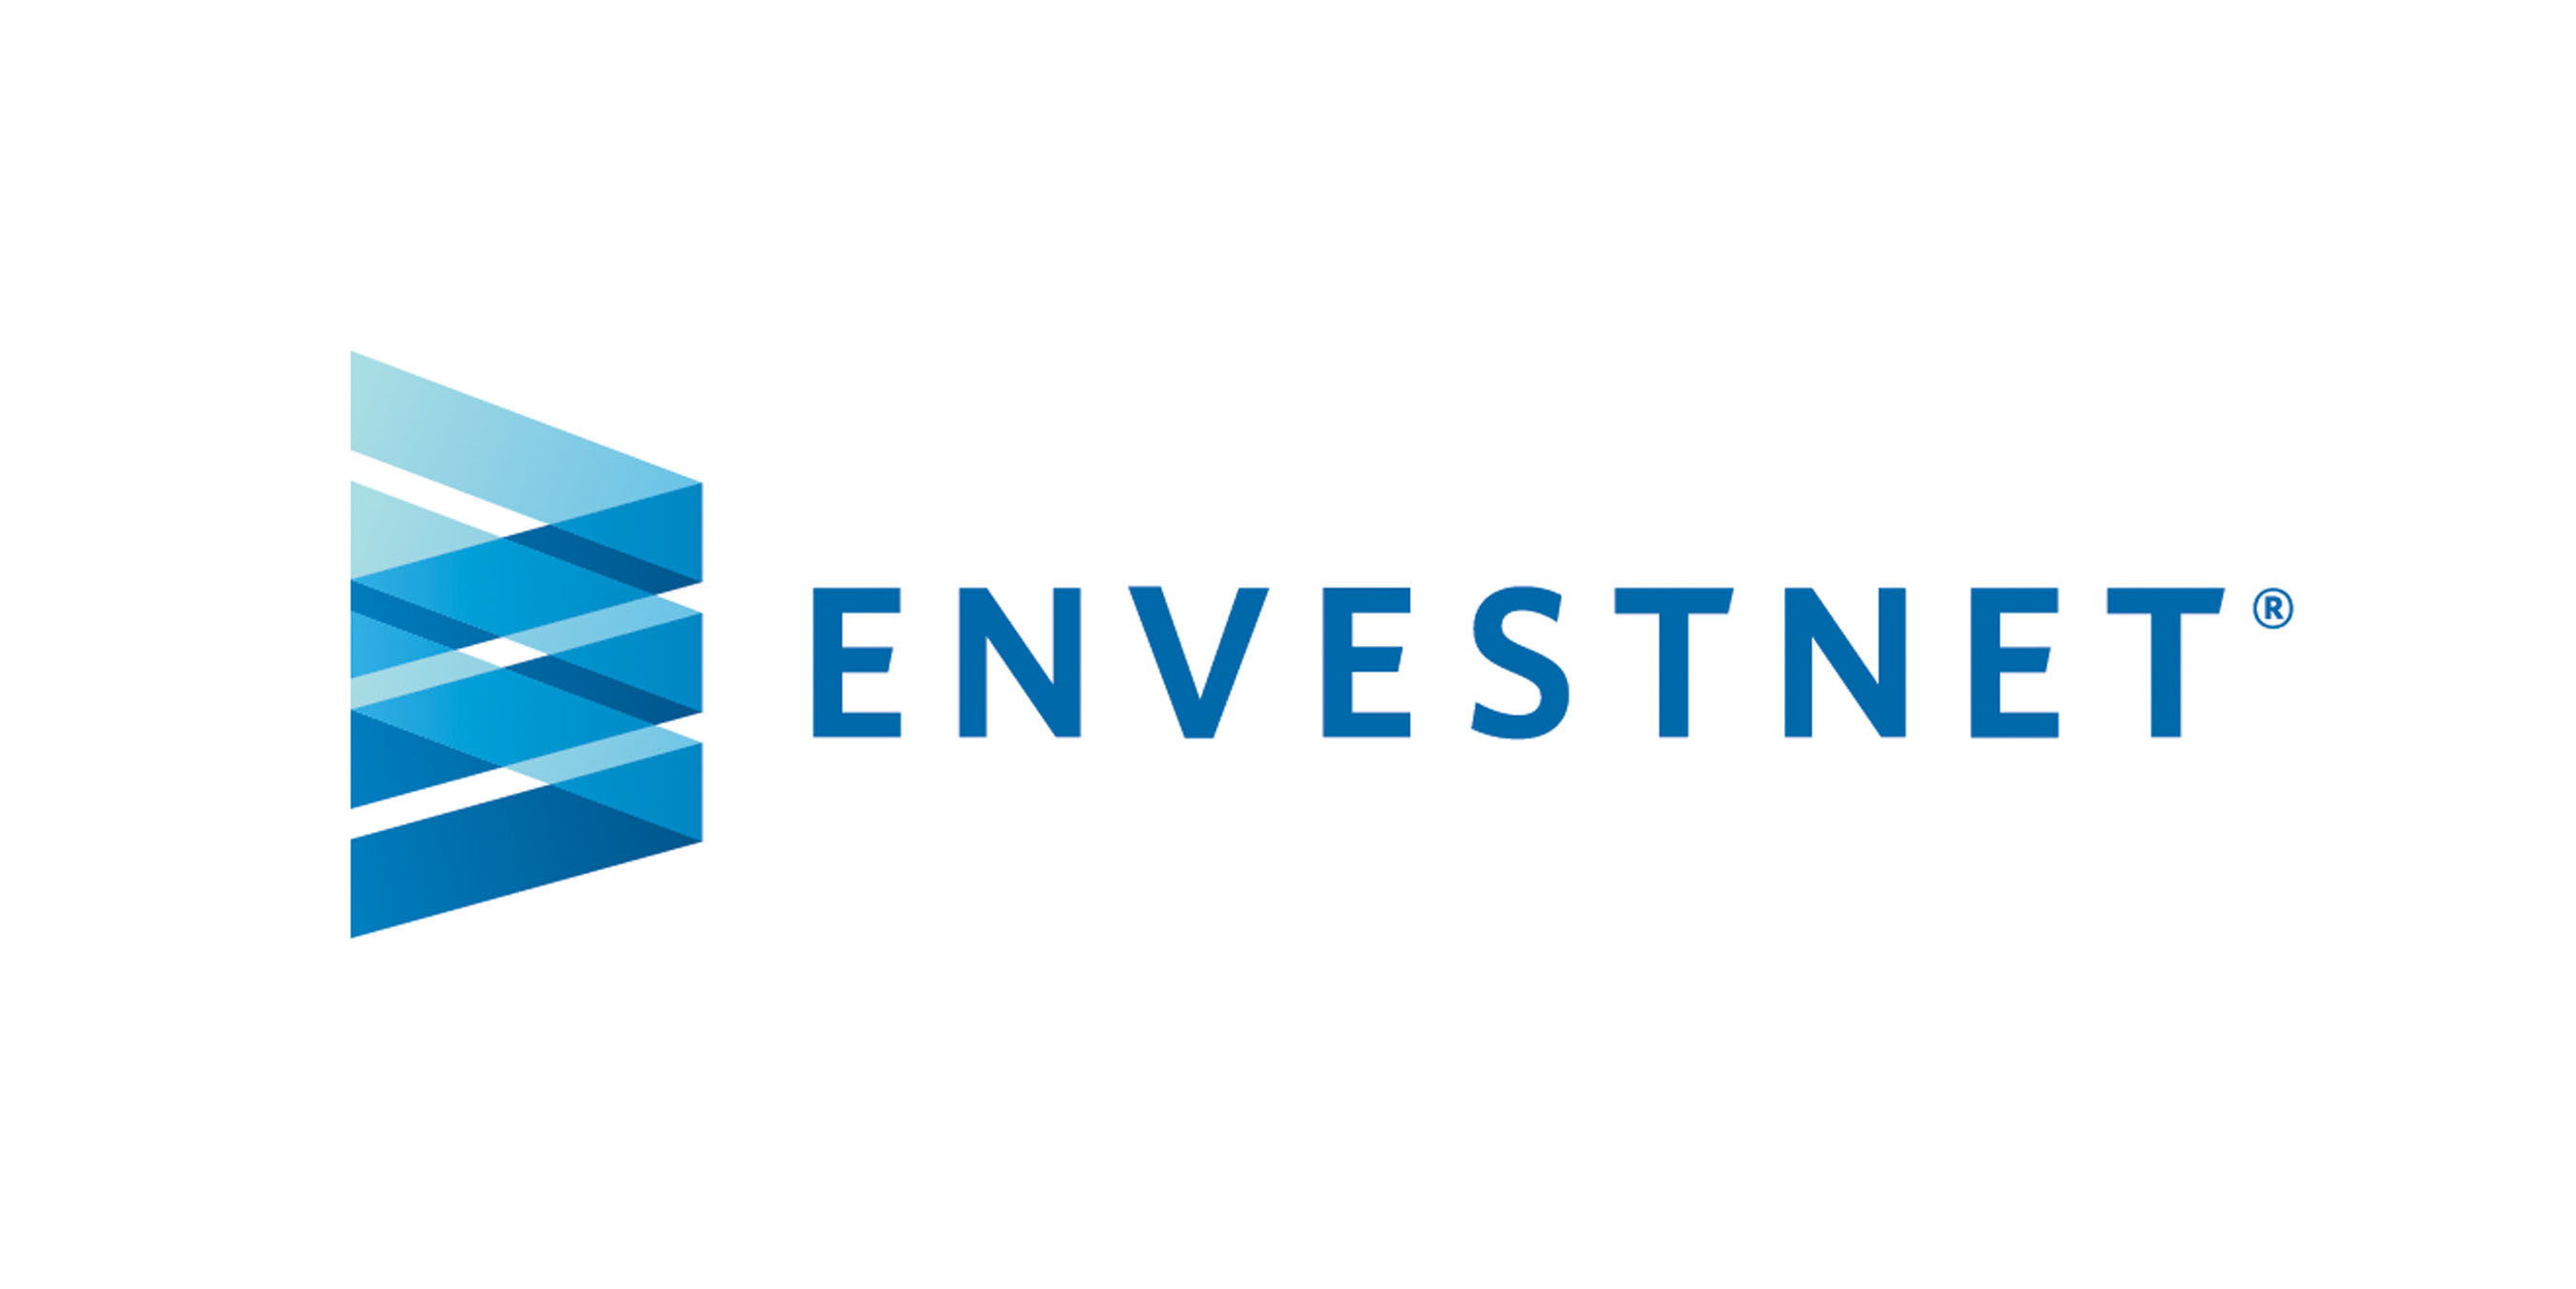 Envestnet, Inc. (ENV) is a leading provider of unified wealth management technology and services to investment ...